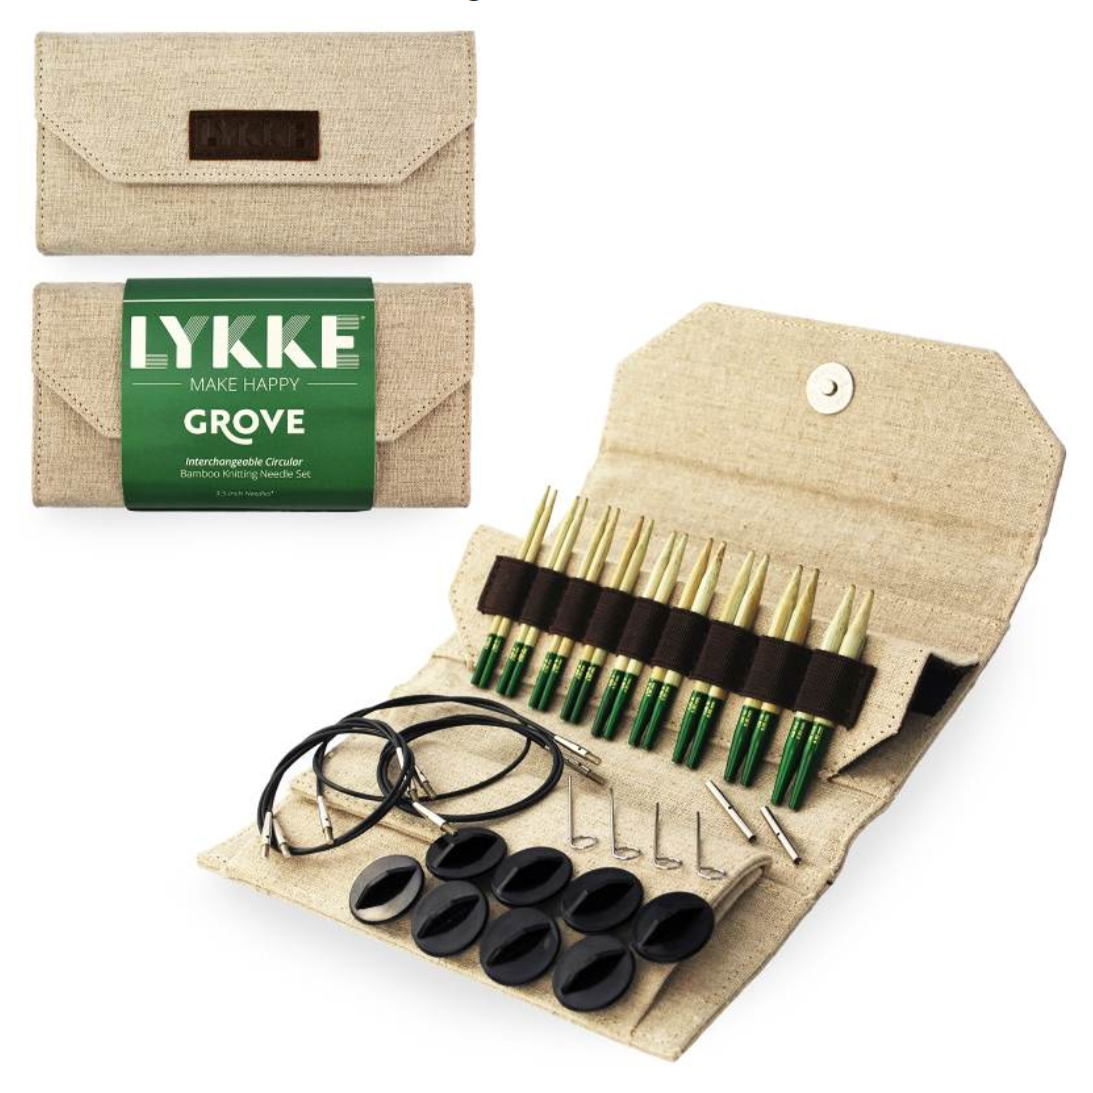 "Lykke Grove 3.5"" Interchangeable Needles Set"